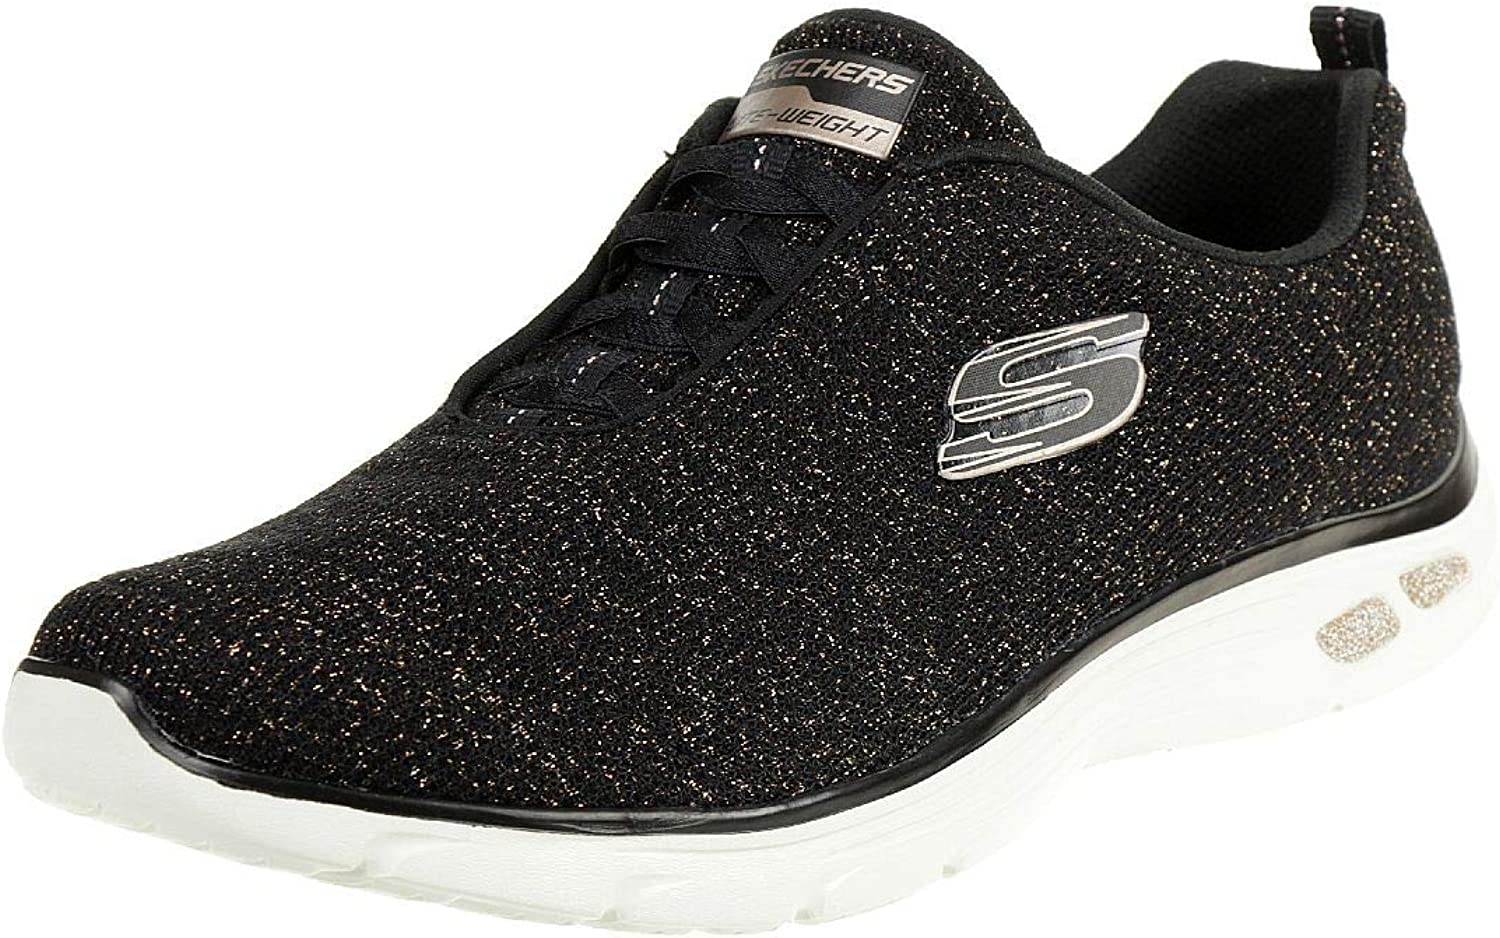 Skechers Womens Empire D'Lux - Burn Bright Bungee Slip On Air Cooled Memory Foam shoes Black gold Size UK 7 EU 40